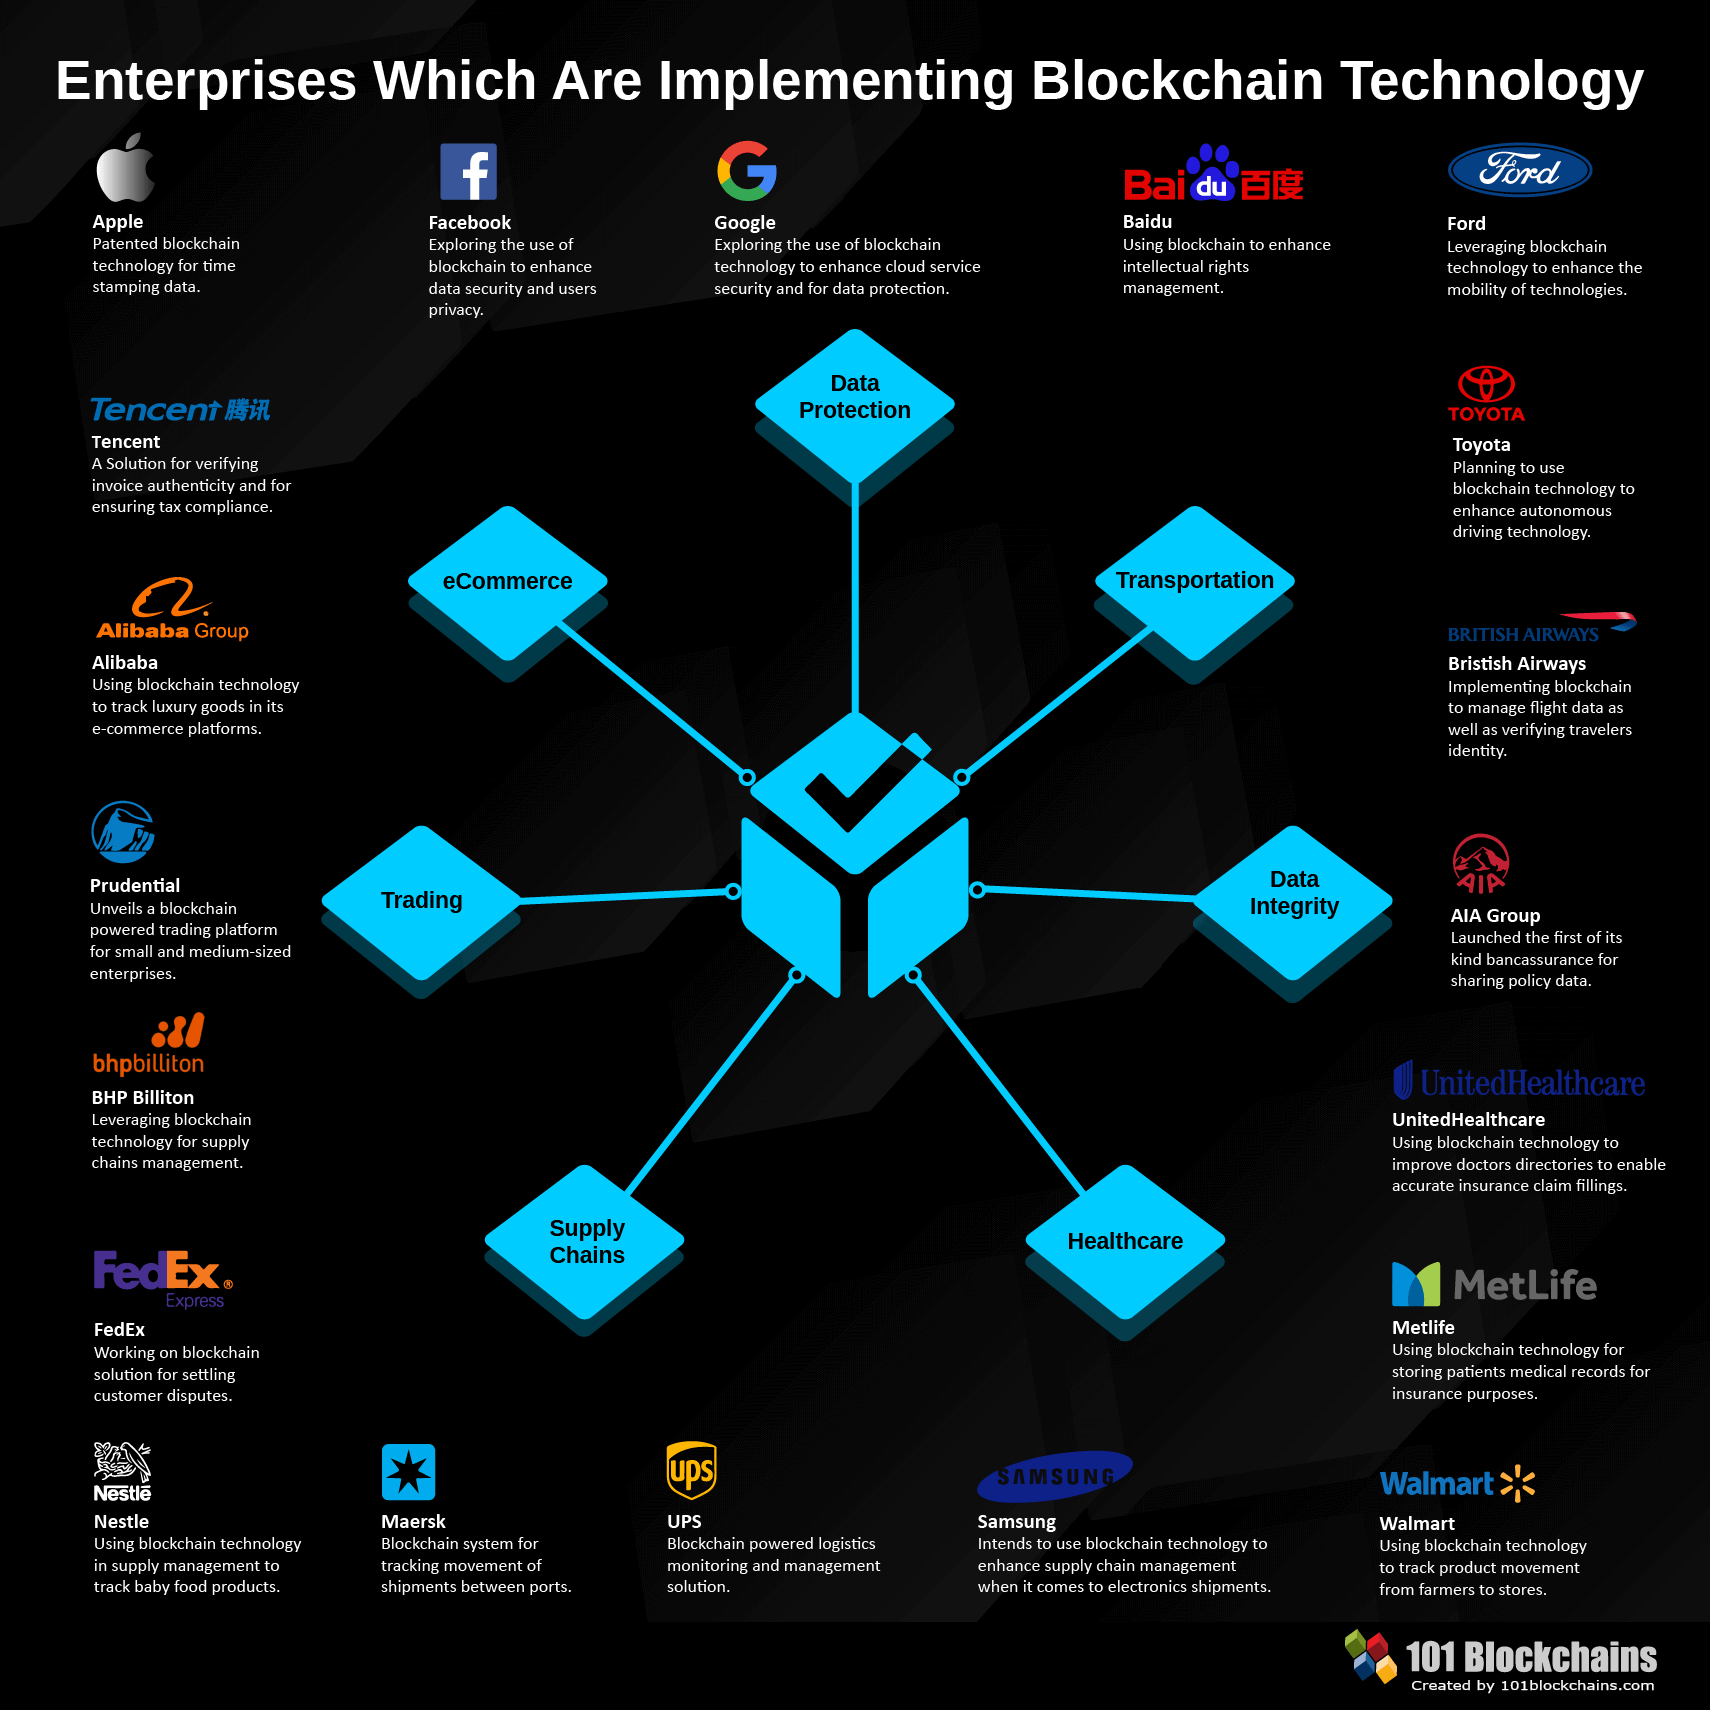 Enterprises Implementing Blockchain Technology